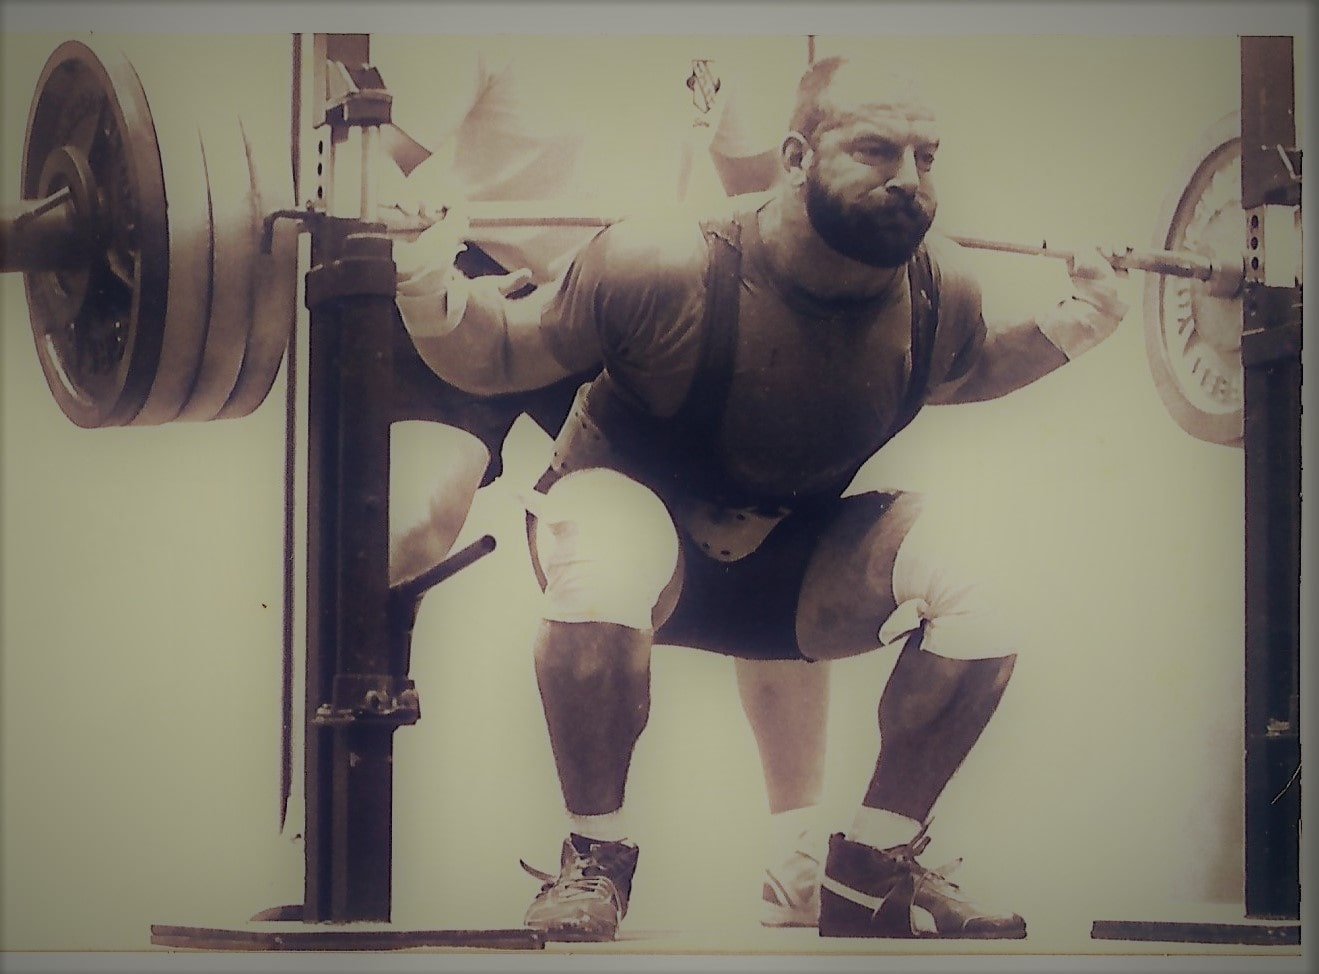 Robert Wagner Powerlifting USA Cover for Jim Steel article Powerlifting Training and Competition